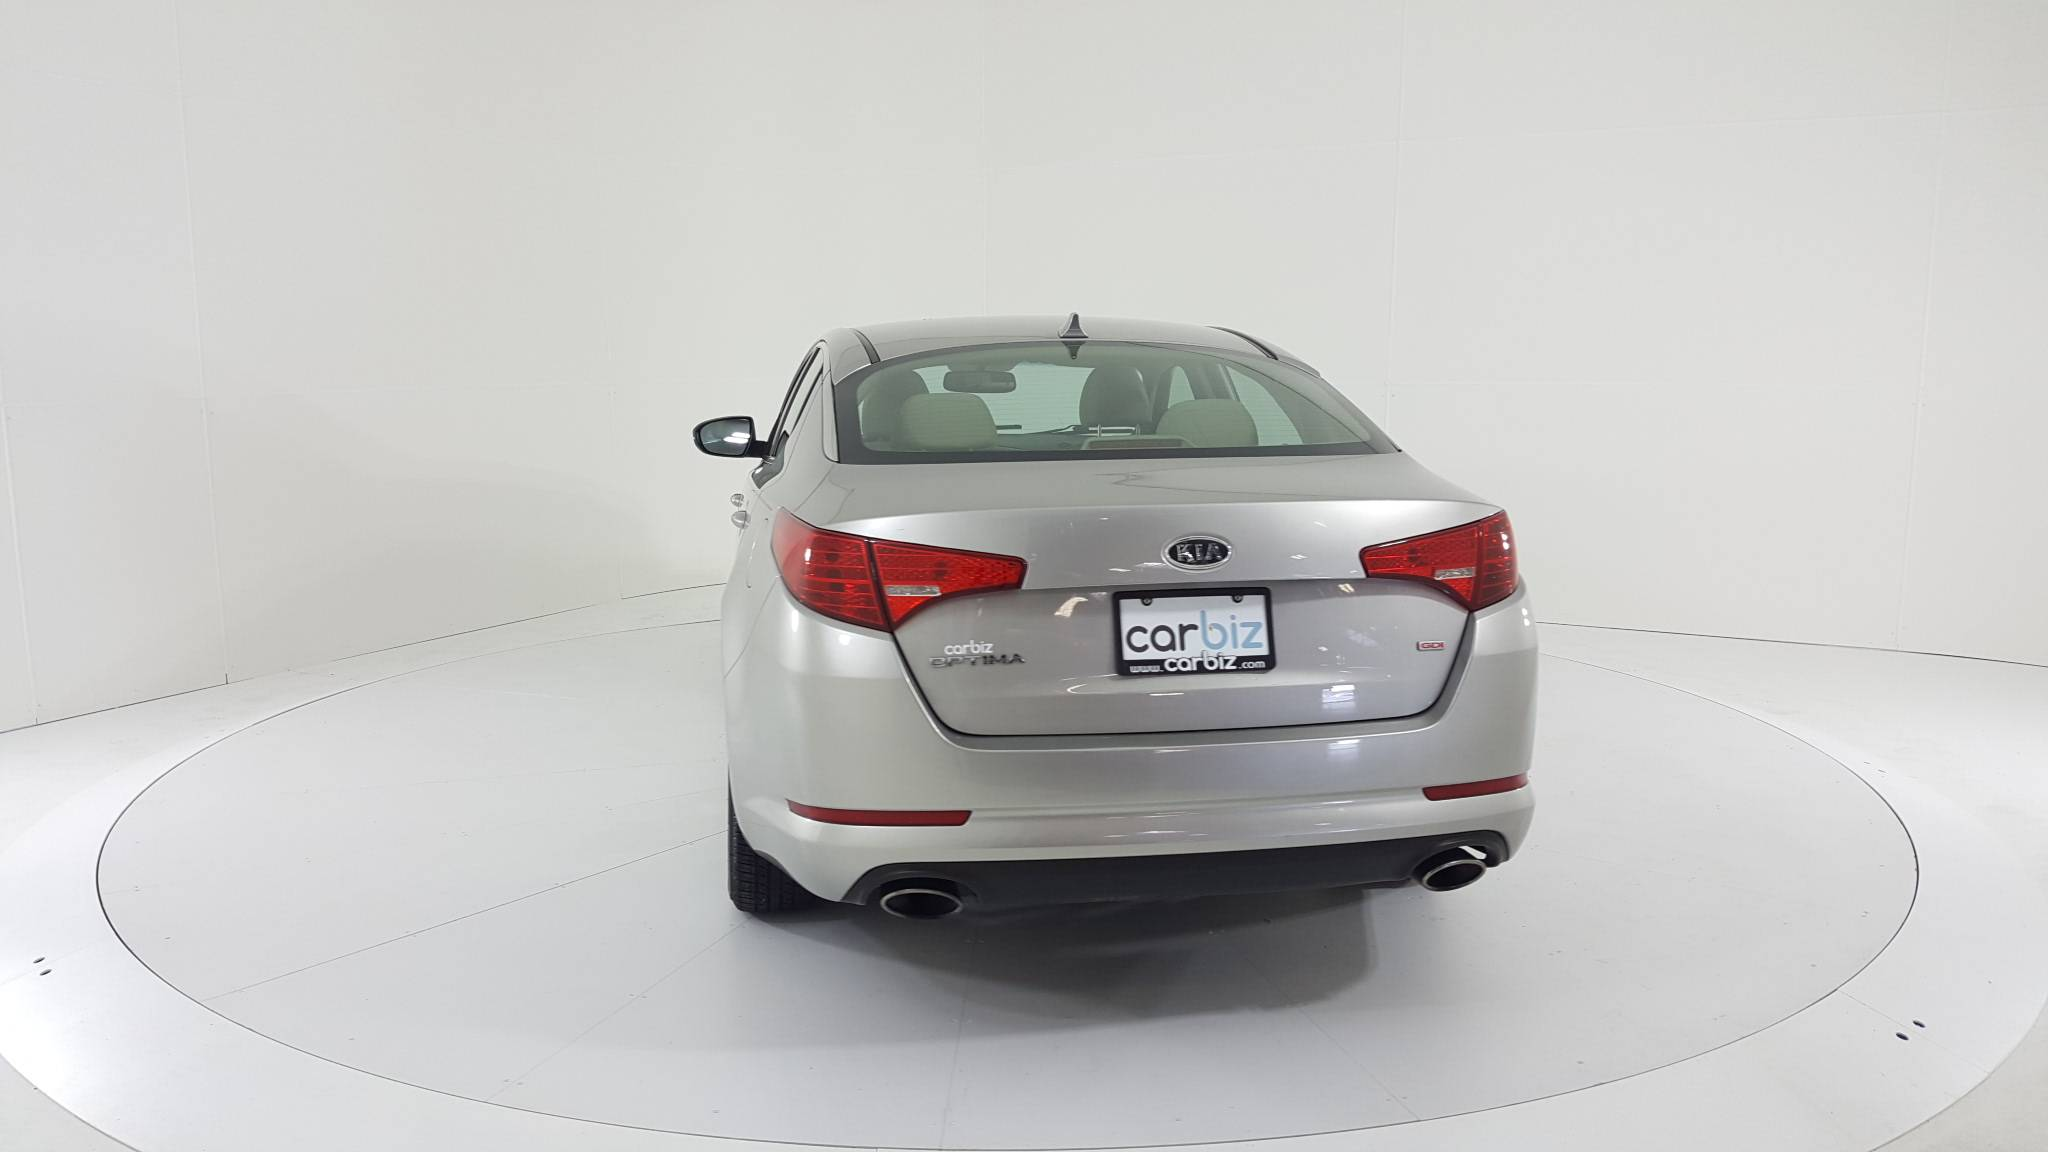 in fwd dealership owned turntable inventory auto baltimore pre sp used optima lx sdn car kia